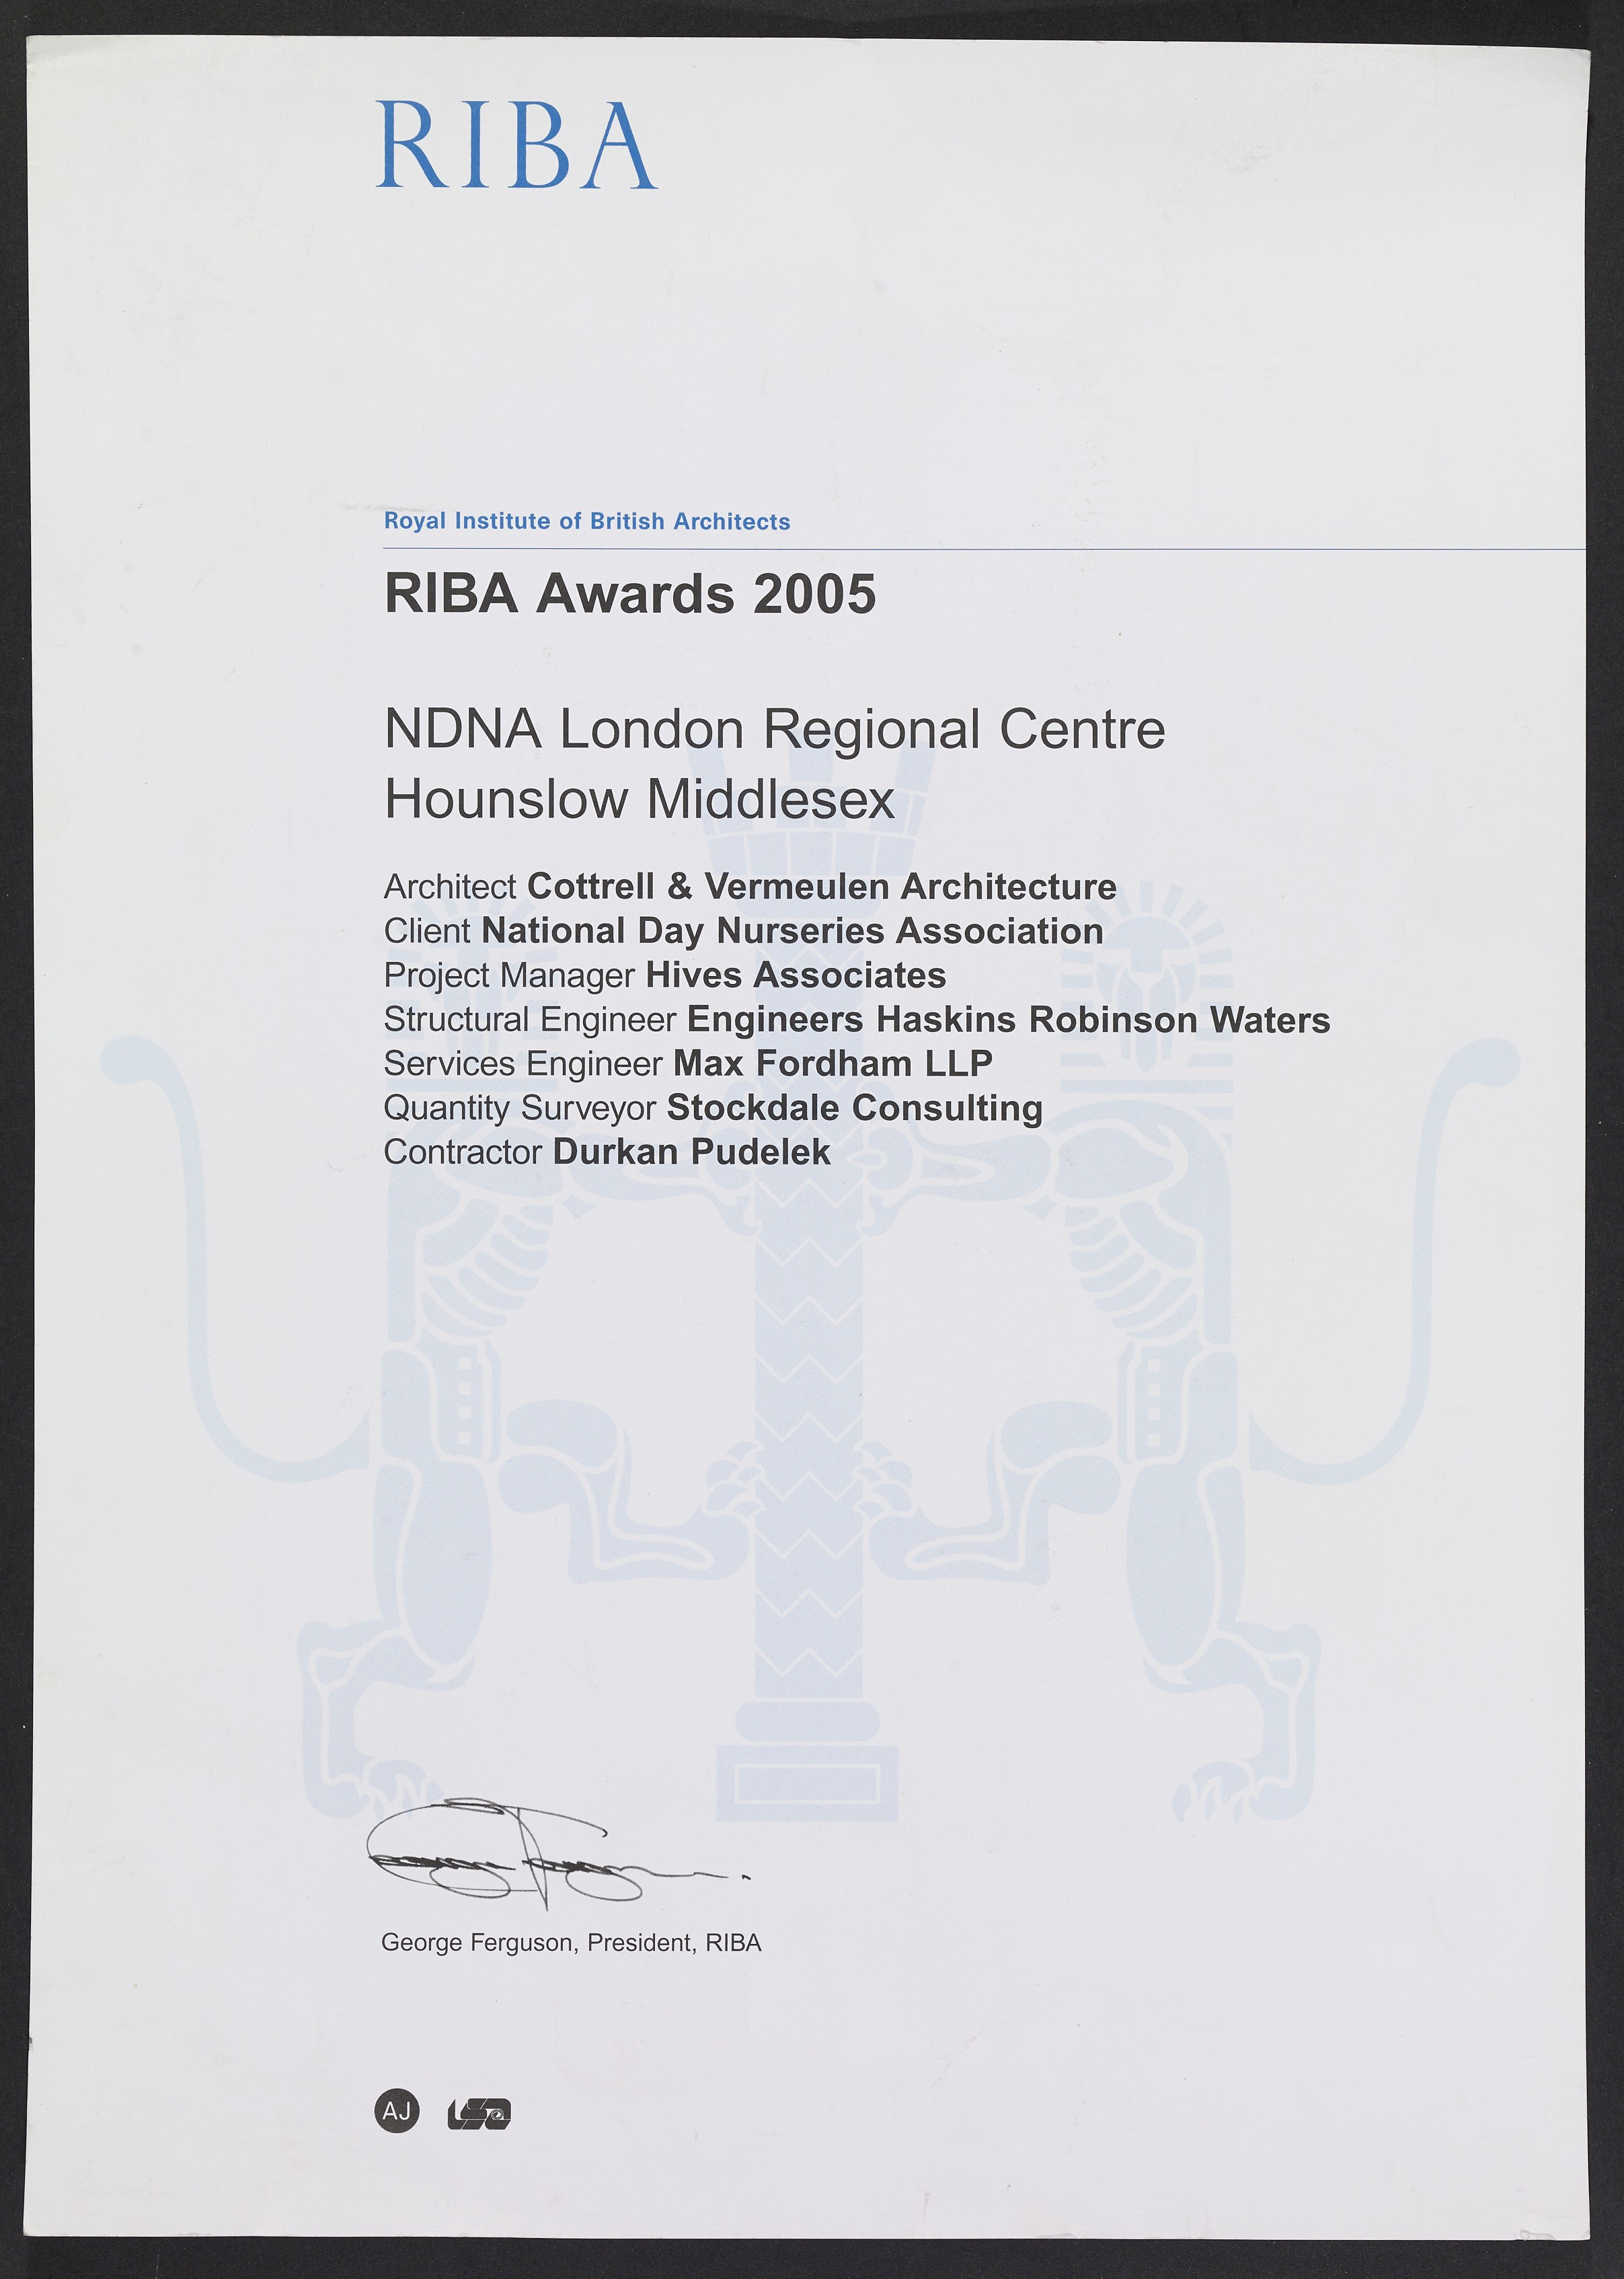 Neighbourhood Nursery, Southall by Cottrell and Vermulen Architecture won a RIBA award in 2005